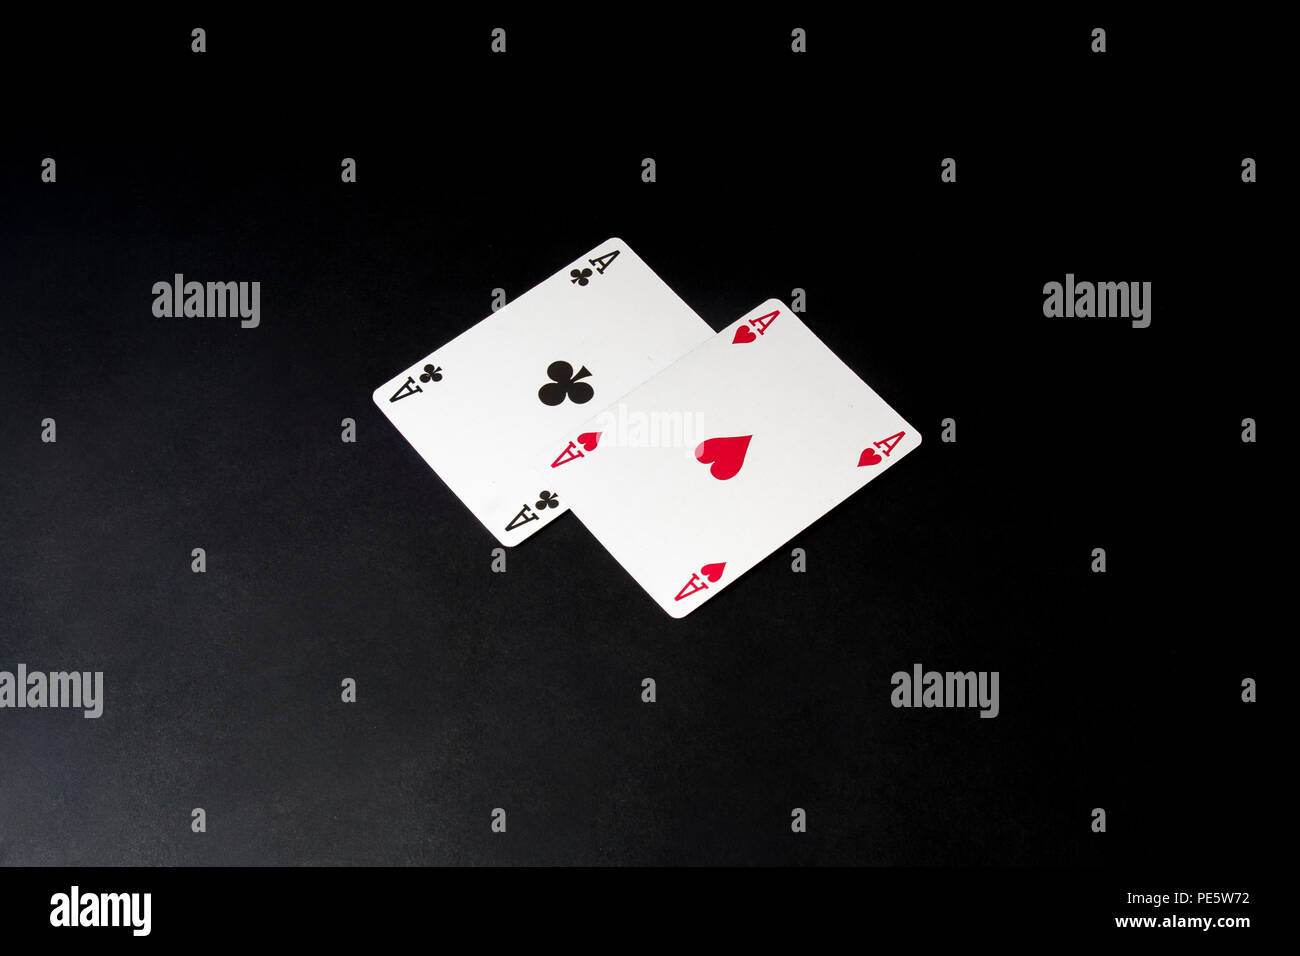 Poker cards over black. Pair of aces. Blackjack. - Stock Image